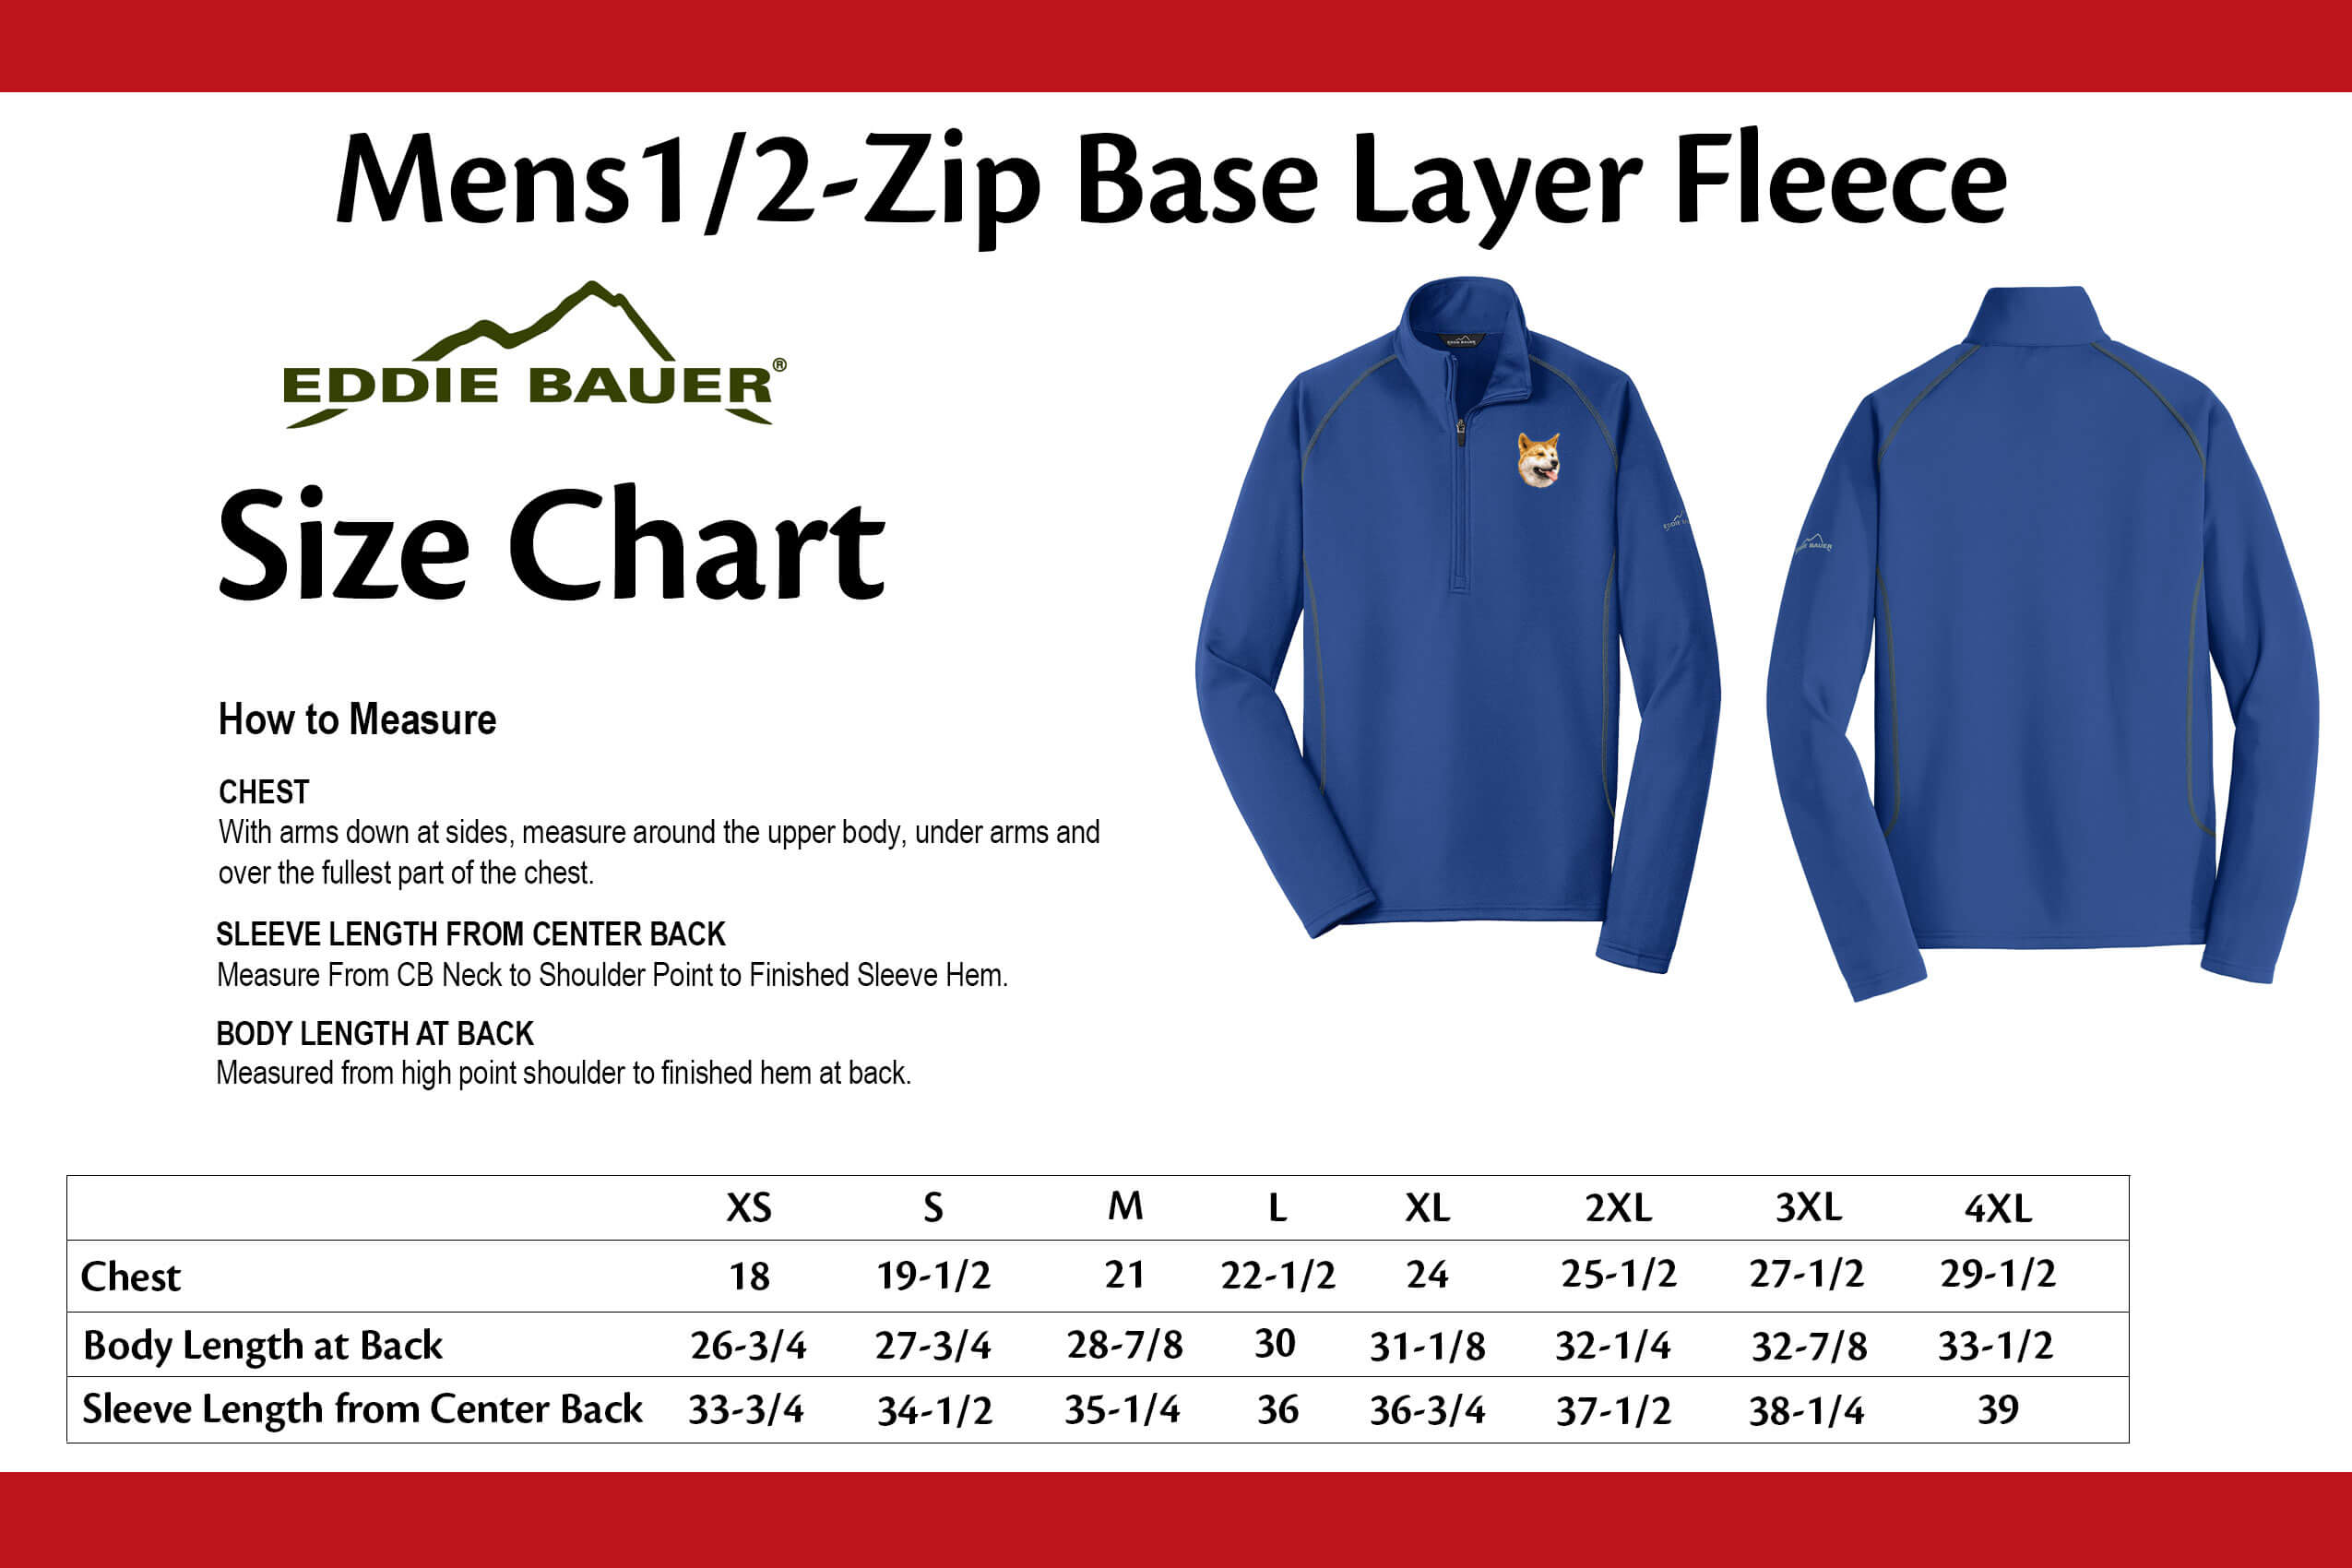 View the sizing guide also birddawg embroidered eddie bauer mens base layer fleece rh cherrybrook